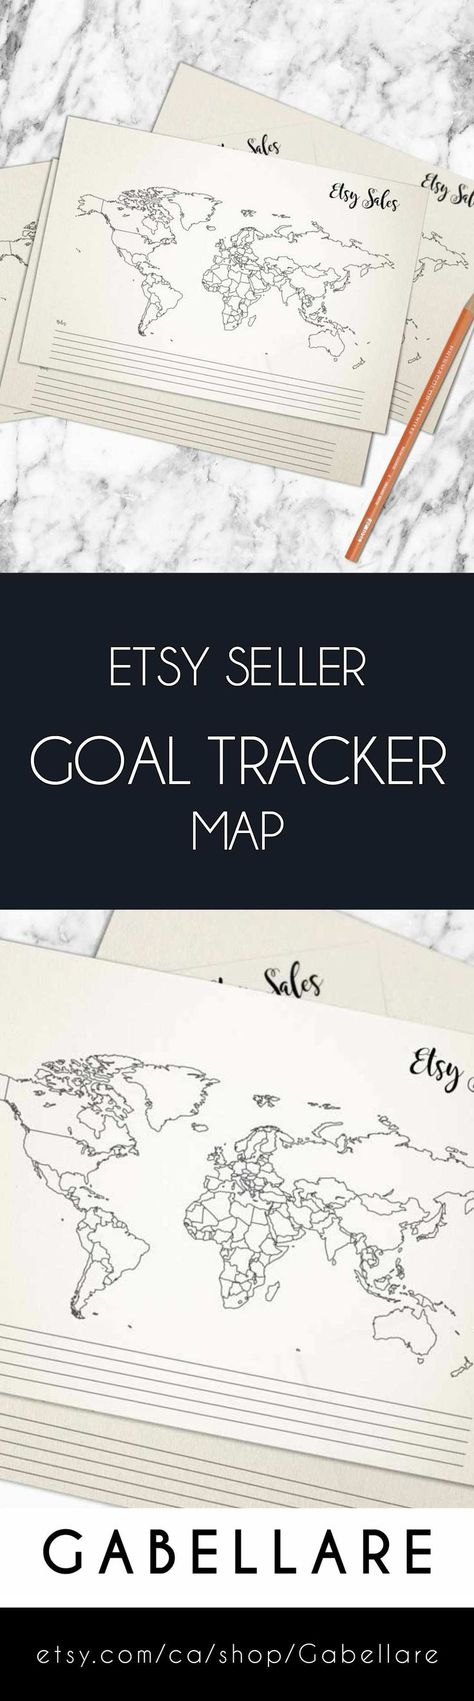 Gabellare | Are you ready to increase revenue?.  To track your sales is a vital ingredient for the success of your Etsy store, and our world map helps you collect your data in an easy way. To track goals is the only way to truly capture whether your marketing process is delivering the results you want.